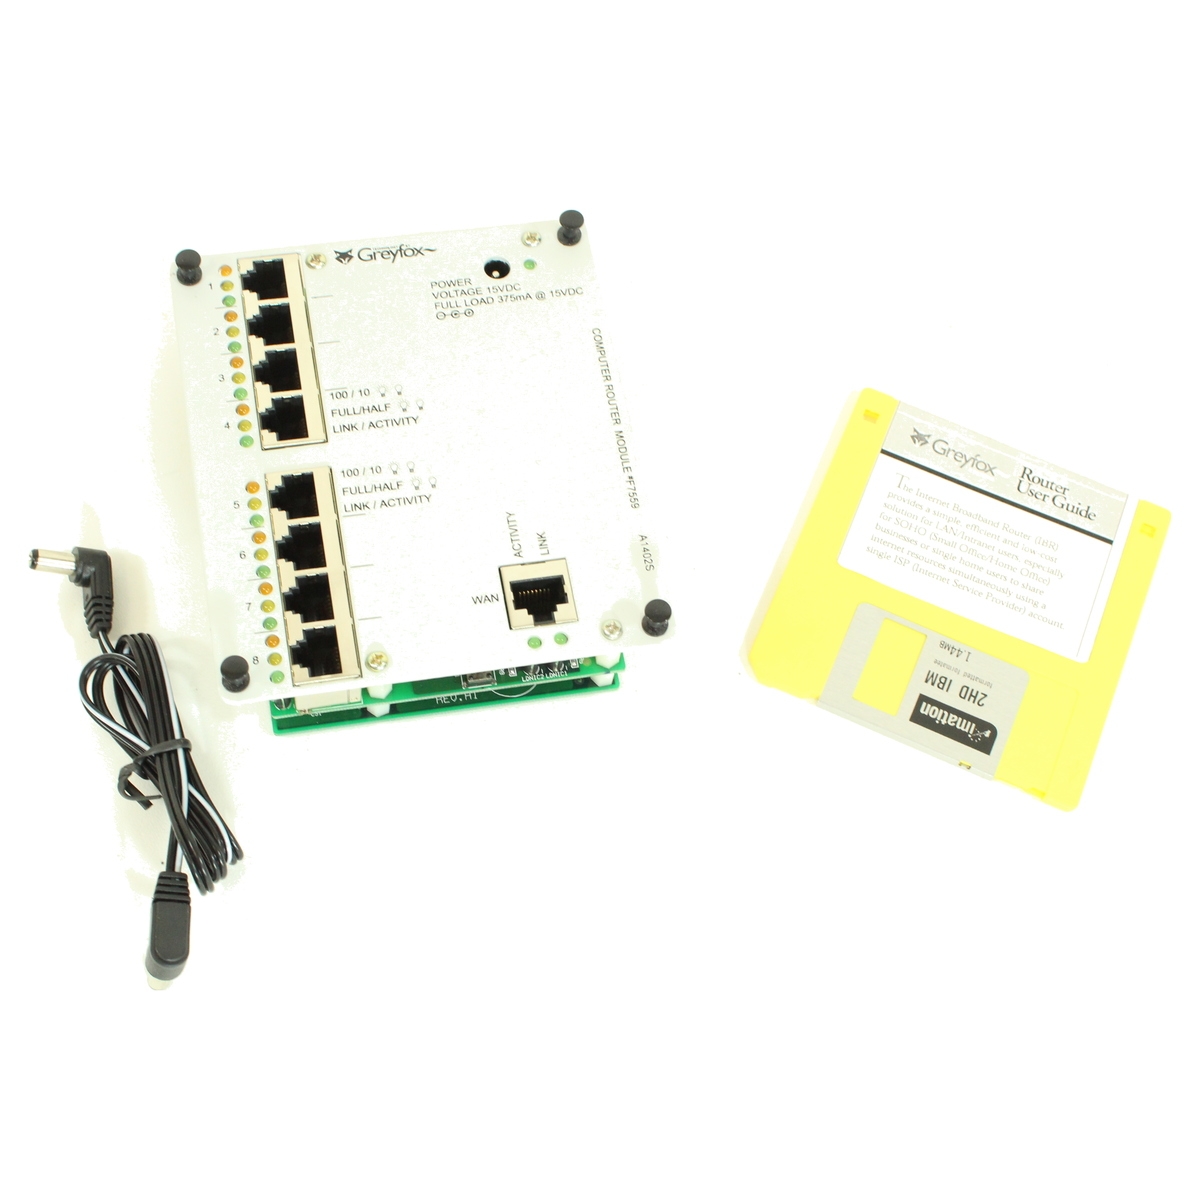 1e20ec22d9f Details about On-Q Legrand F7559 8-PORT Internet Firewall Route greyfox  systems BRAND NEW